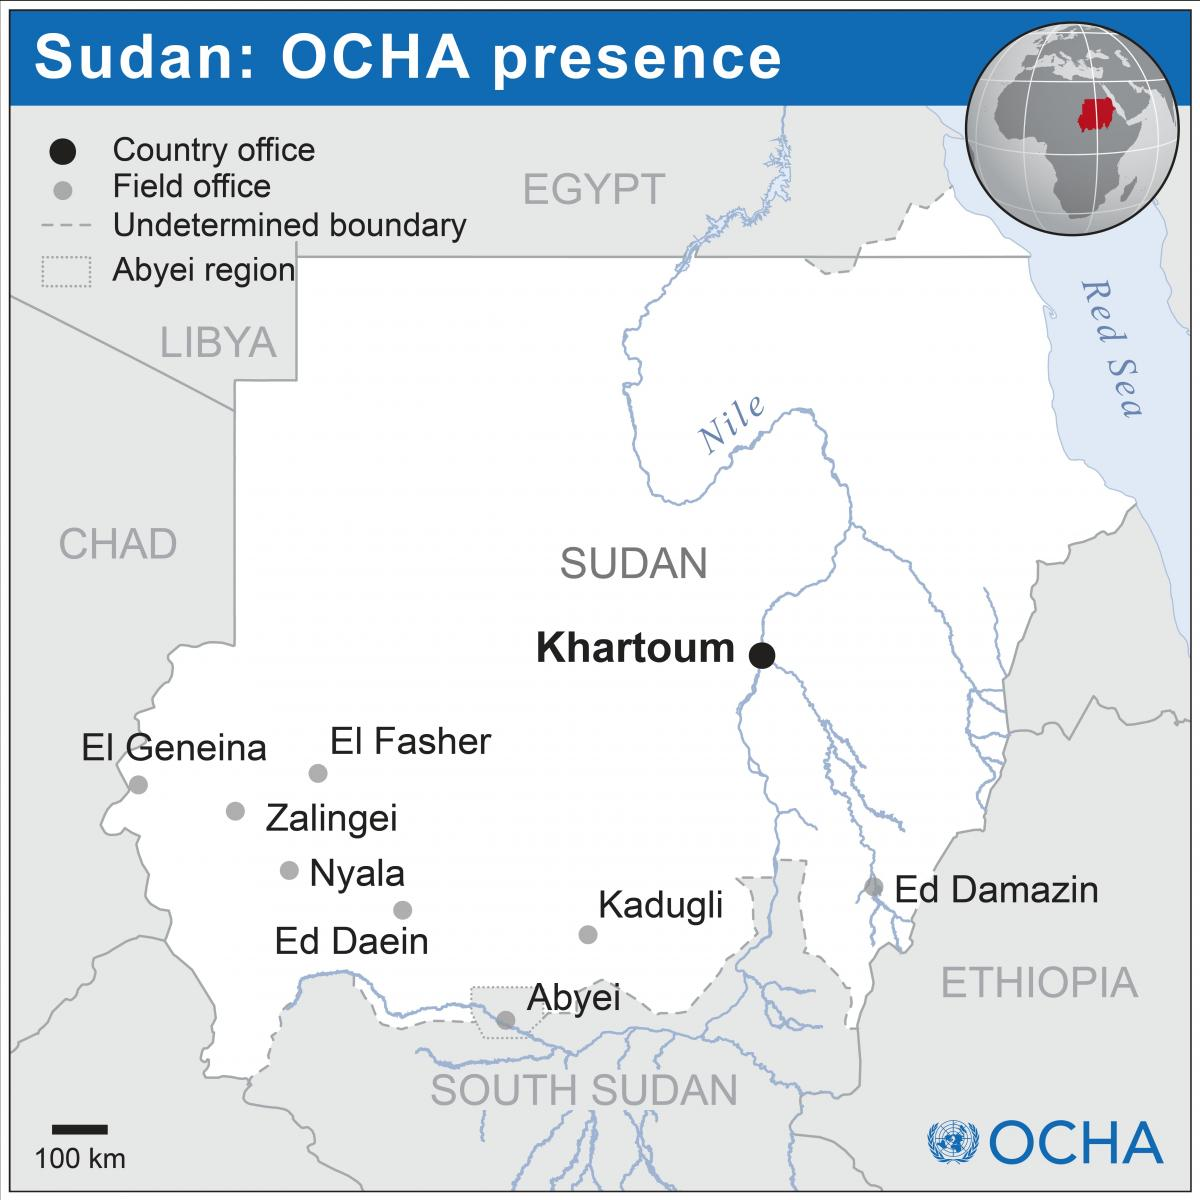 OCHA office locations